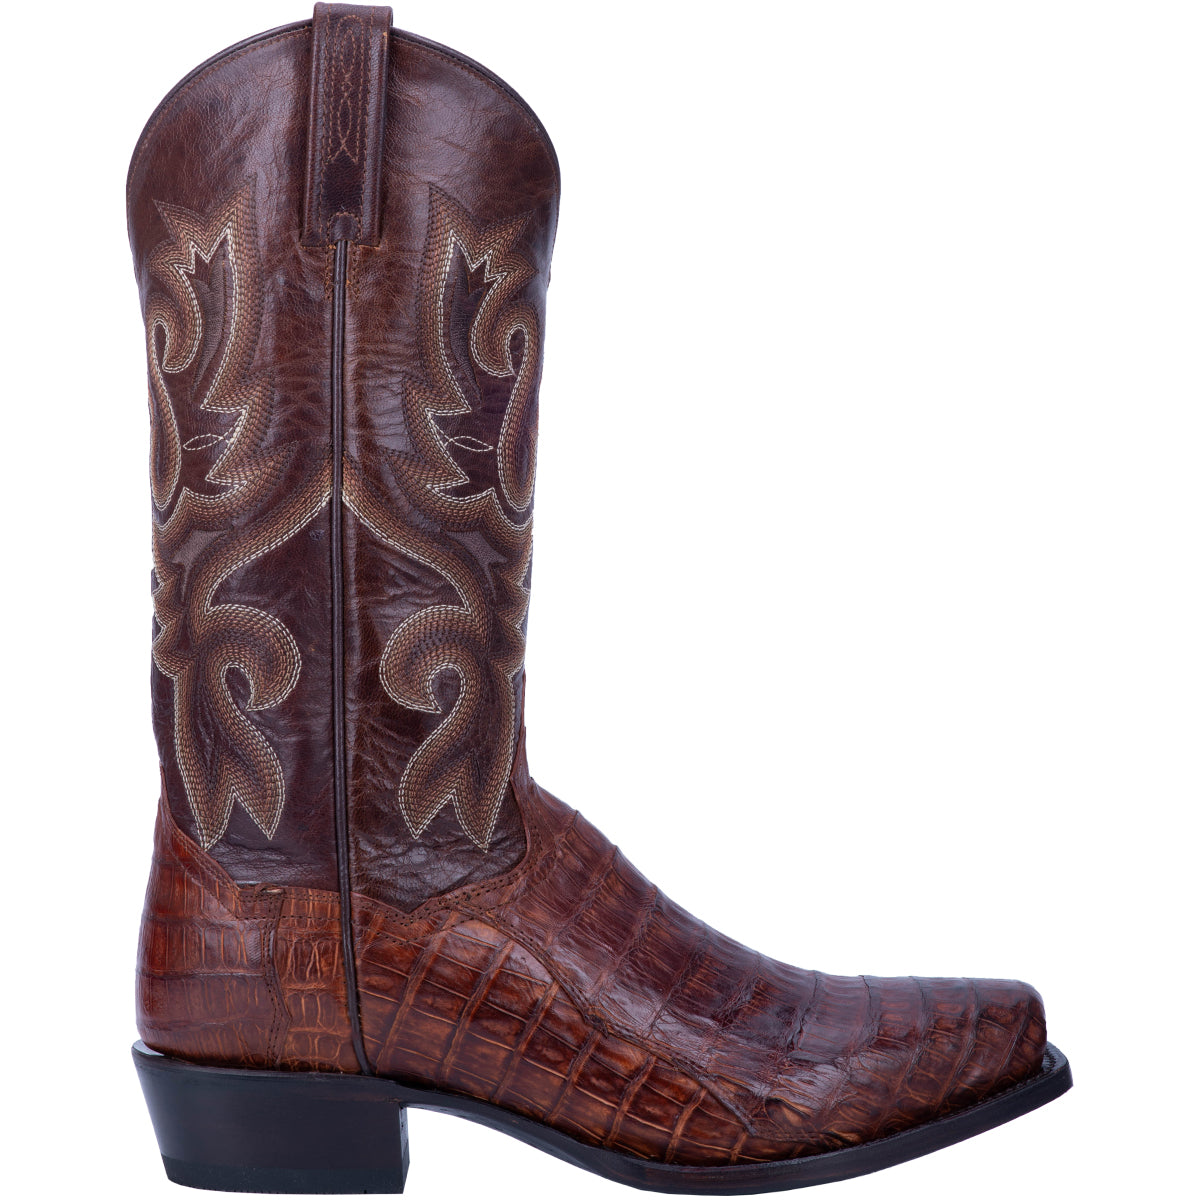 BAYOU CAIMAN BOOT - Dan Post Boots